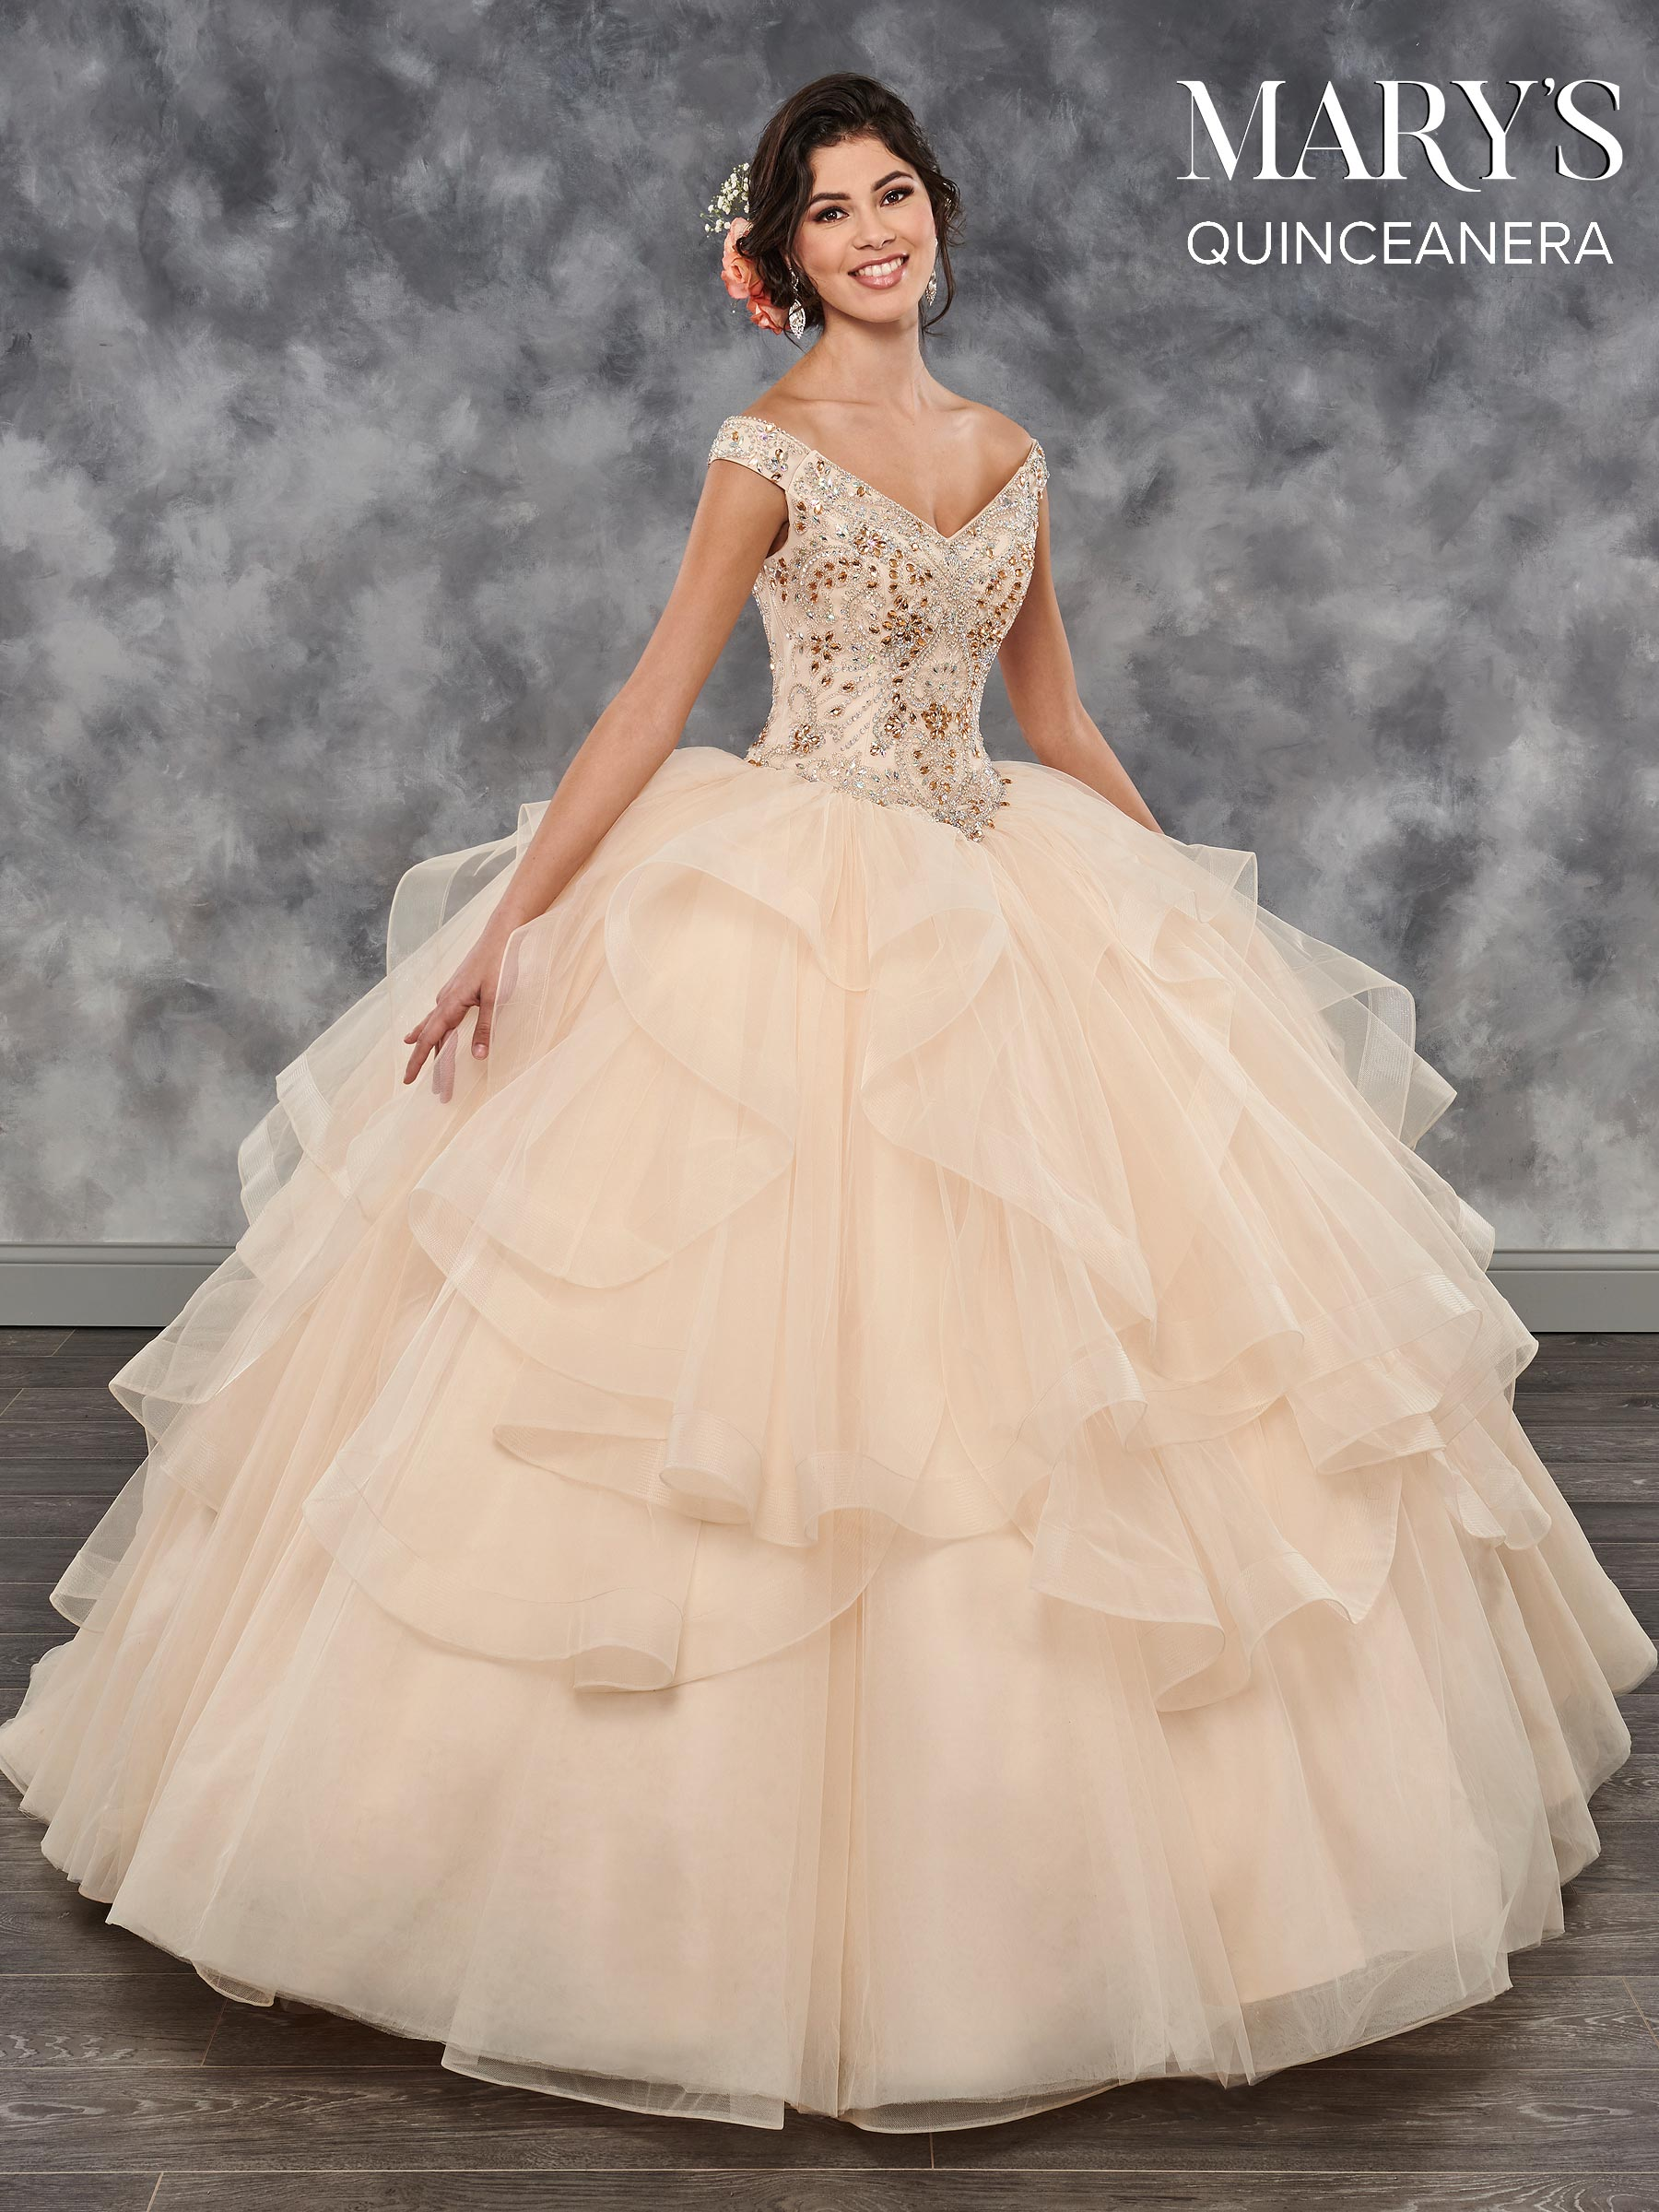 Marys Quinceanera Dresses  Style  MQ2027 in Champagne Wildberry or White Color